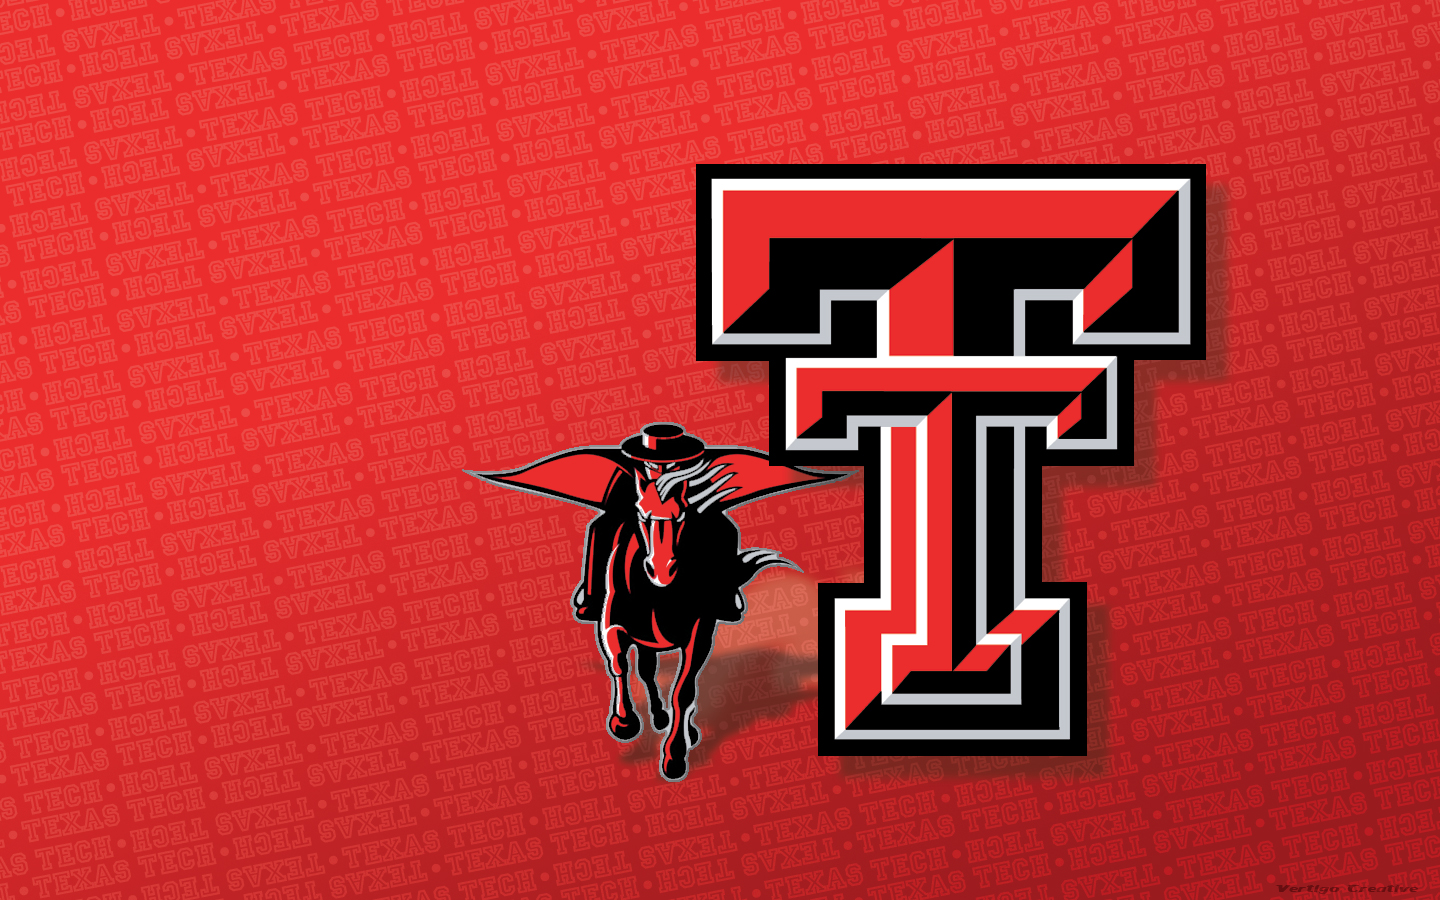 Texas Tech Masked Rider By Vertigo Creative  Desktop. Able To Change Recovery Film Schools In Texas. Best Credit Cards For Airline Miles Rewards. Cheap Business Class Europe Signs Of Low T. Dentist In Prestonsburg Ky Pcr Program Design. West Cape Family Dental Jimerson Funeral Home. Sudden Tooth Sensitivity Police Business Card. Salvage Title And Insurance All Health Care. Community Colleges In Riverside Ca